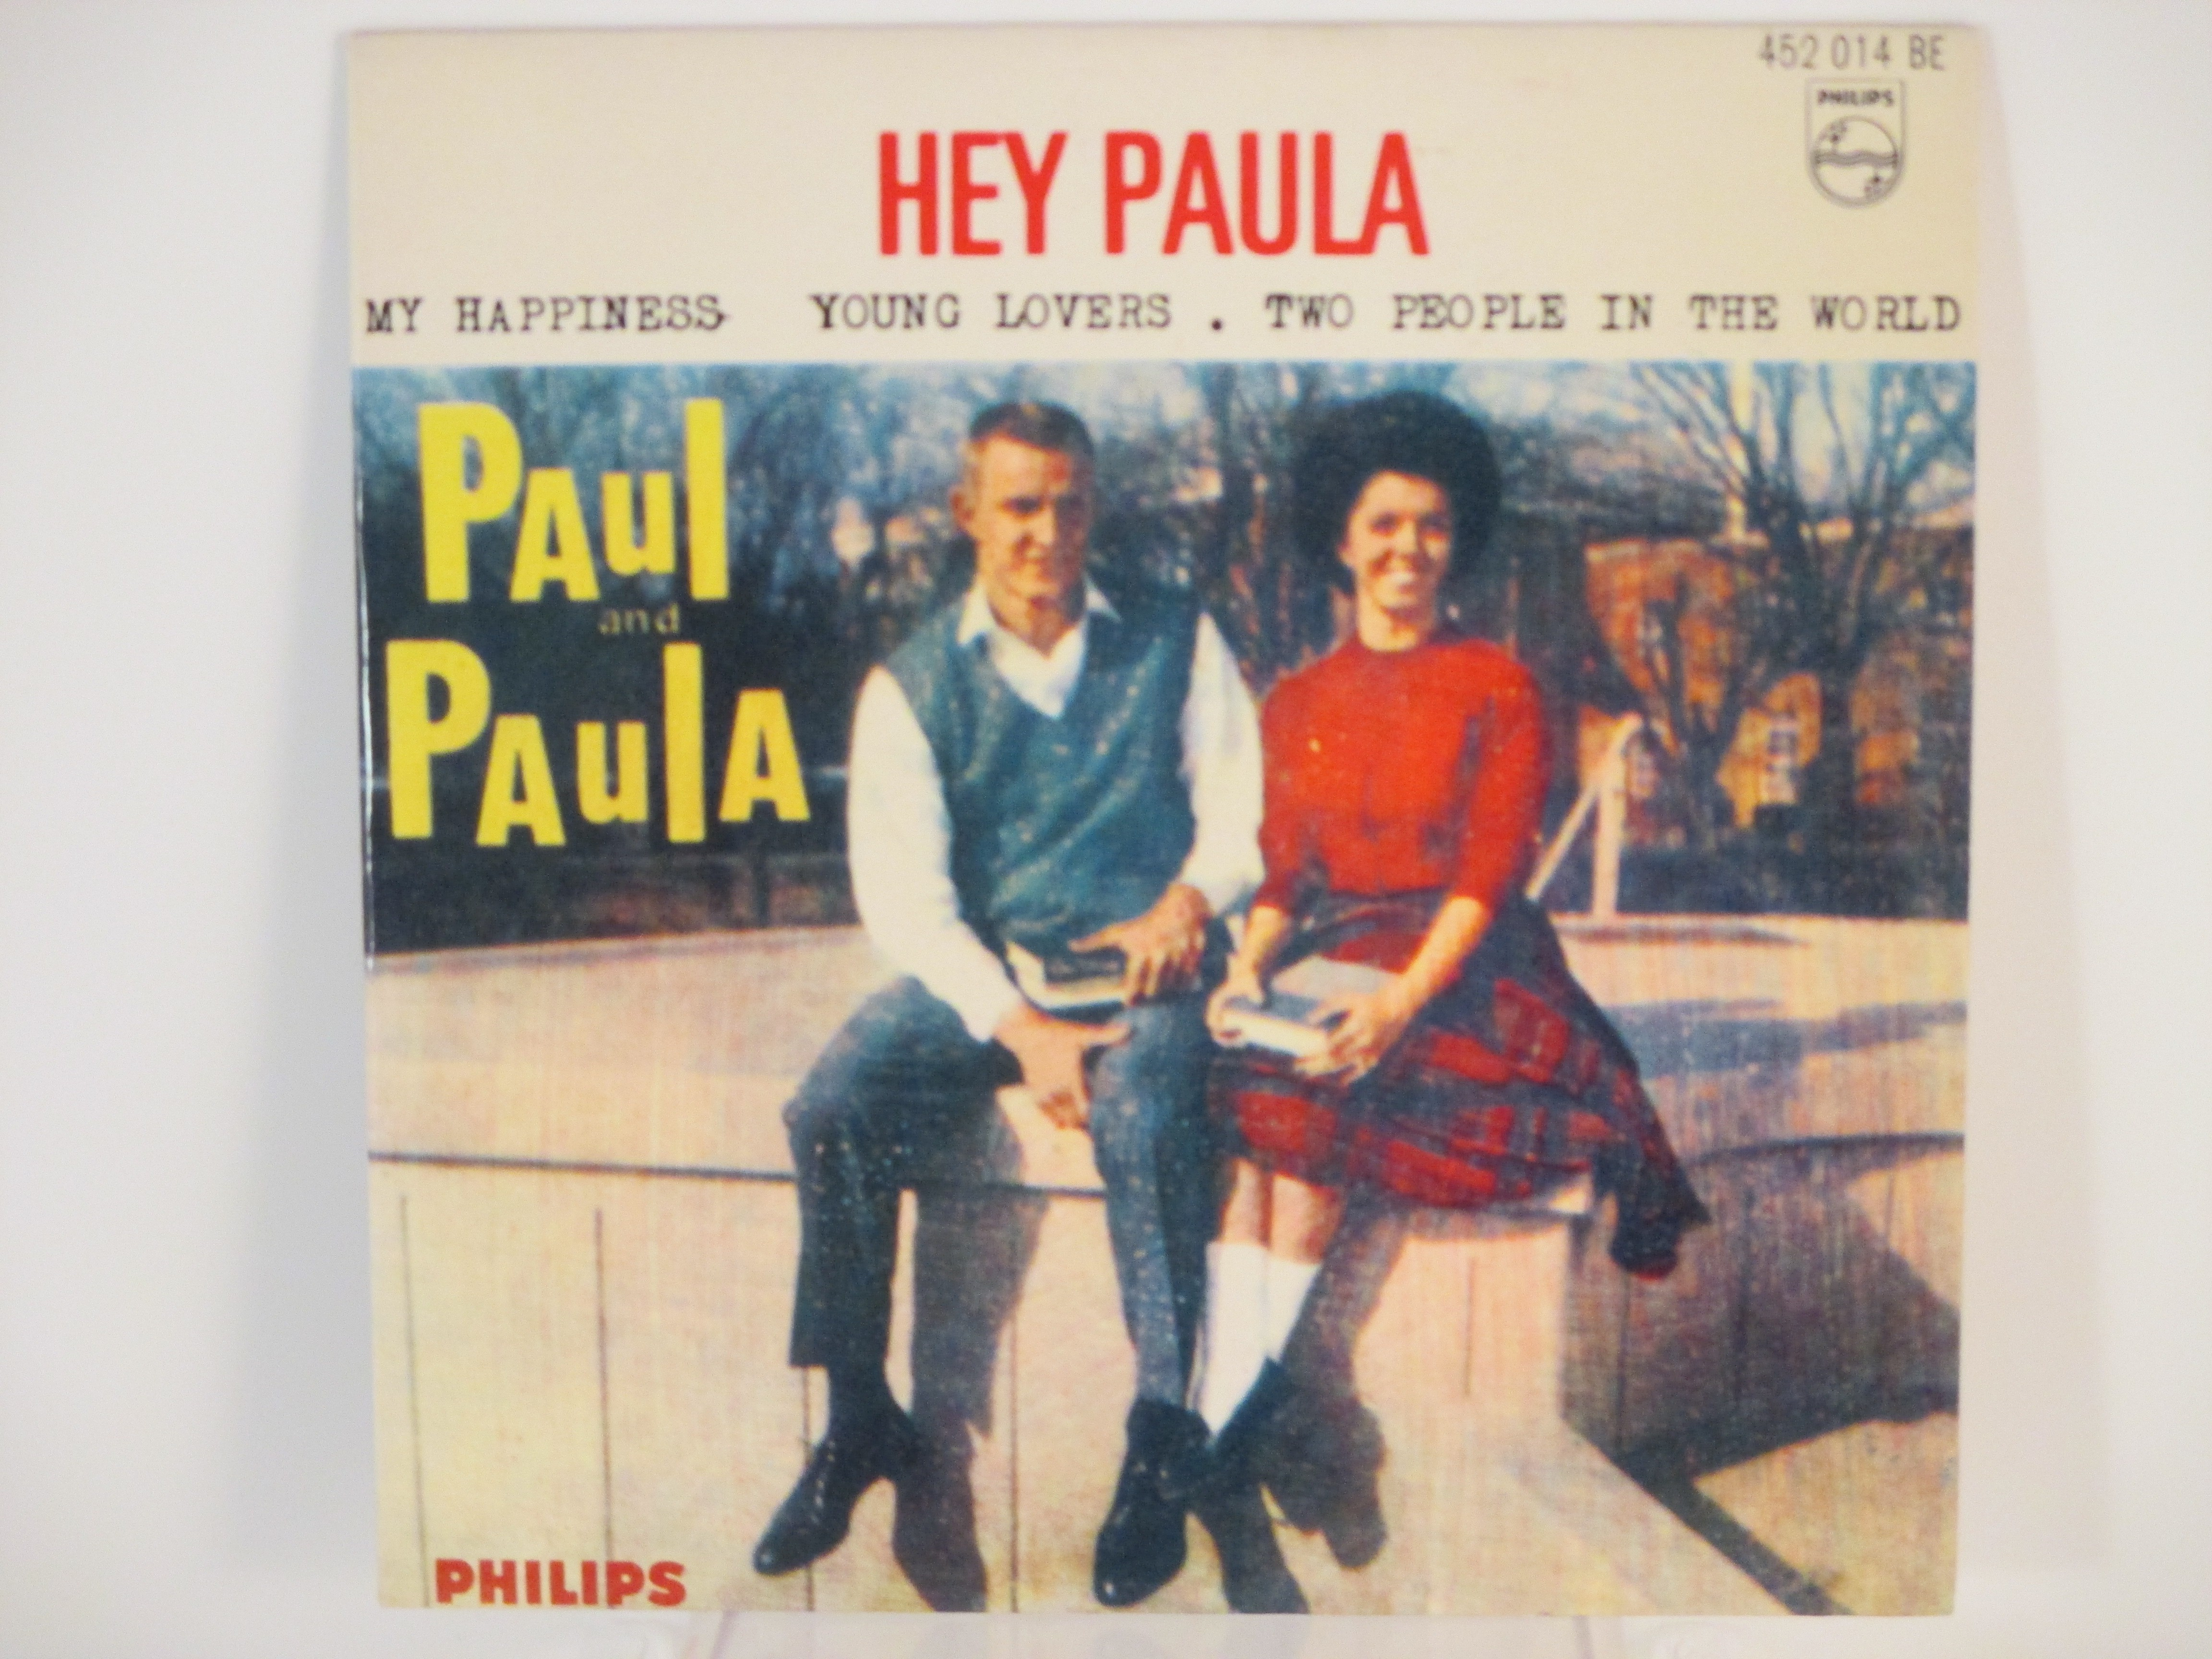 PAUL & PAULA : (EP) Hej Paula / My happiness / Young lovers / Two people in the world